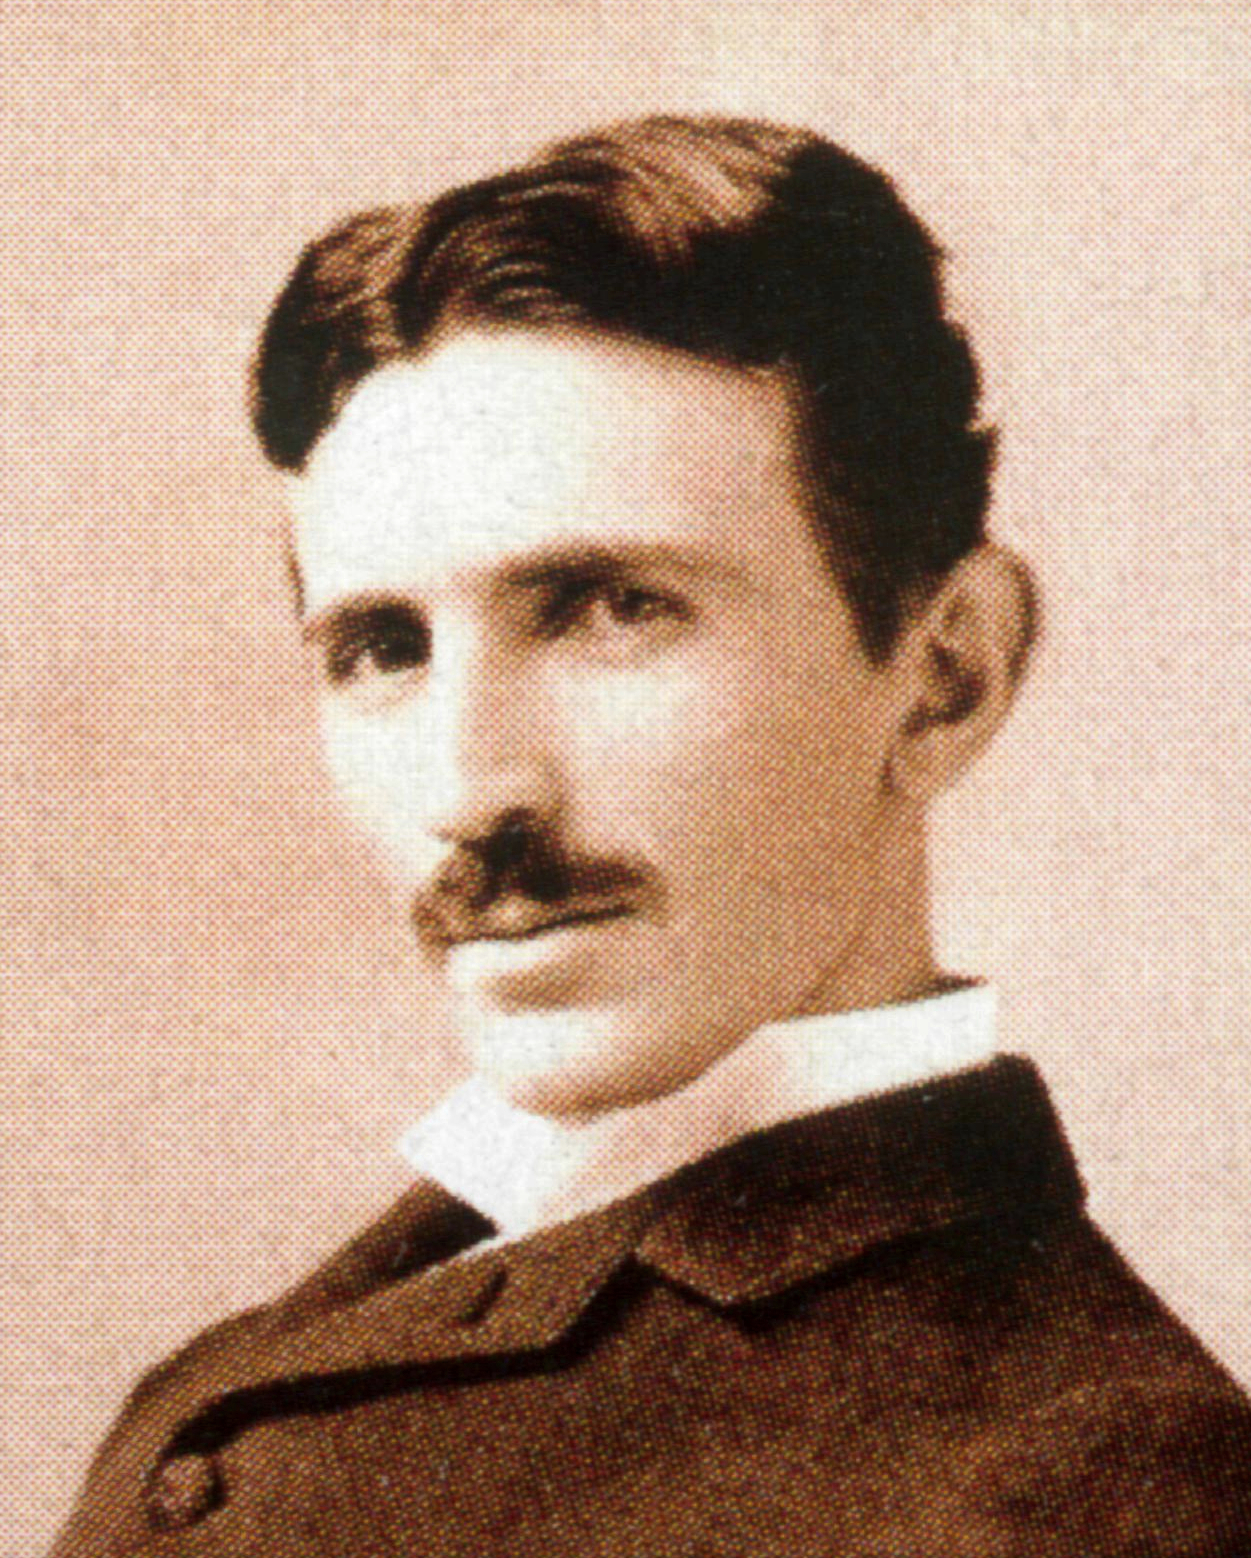 nikola tesla men s rights hero disinformation